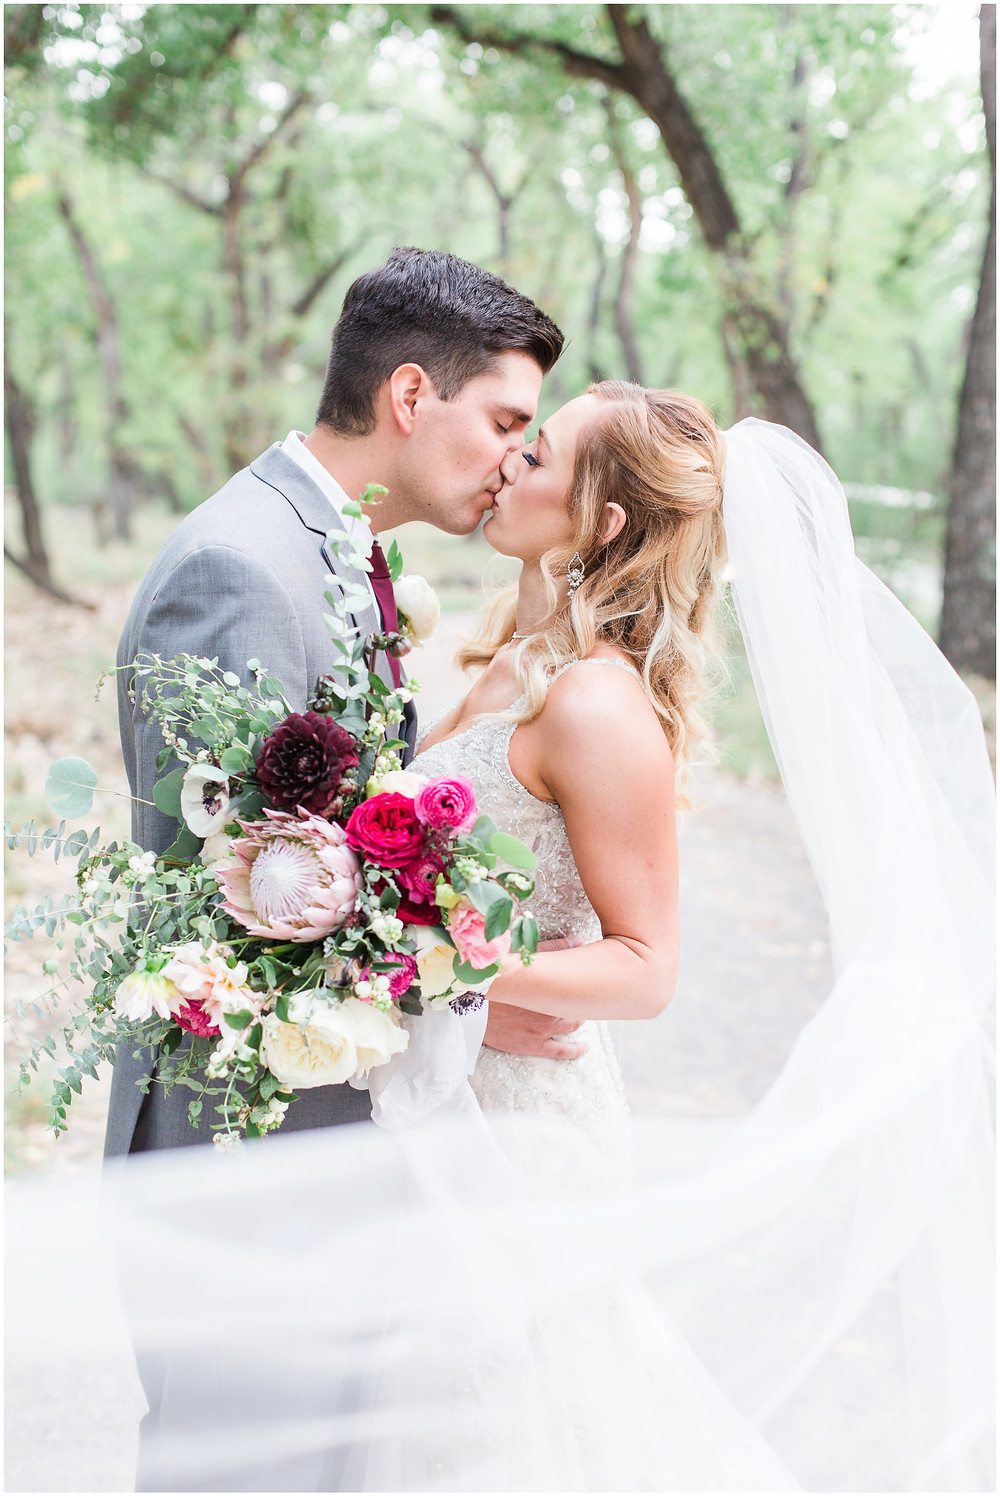 Wedding at Hyatt Tamaya. Outdoor wedding New Mexco. New Mexico Wedding photographer. maura Jane photography. burgundy wedding. bride and groom photos. wedding veil